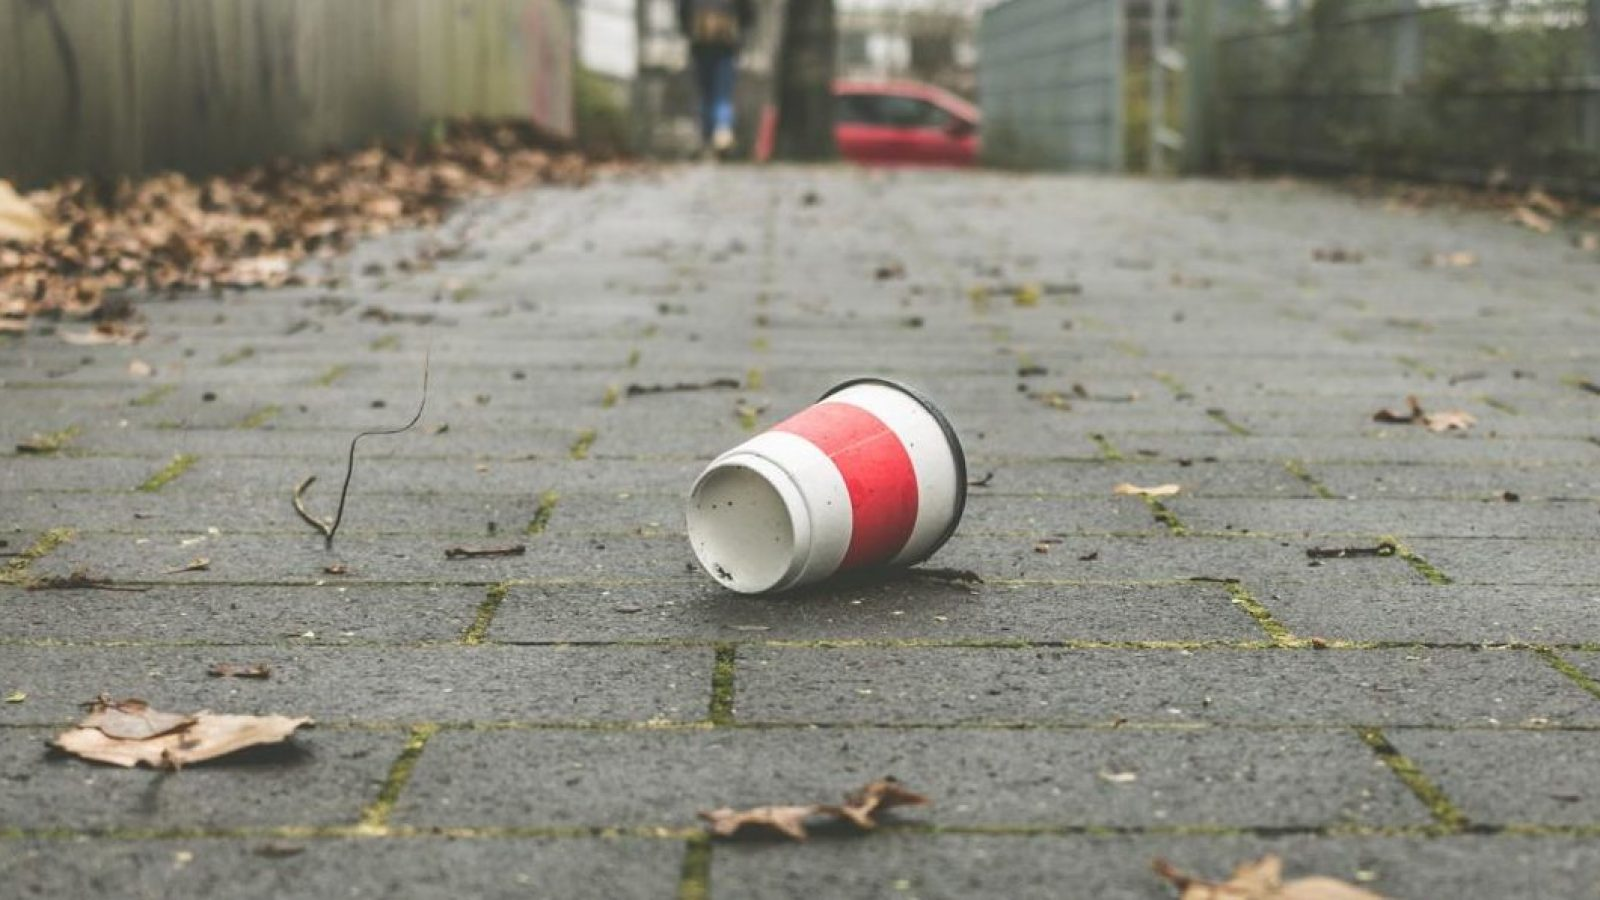 Anyone caught dropping litter will face an on-the-spot fine of £80